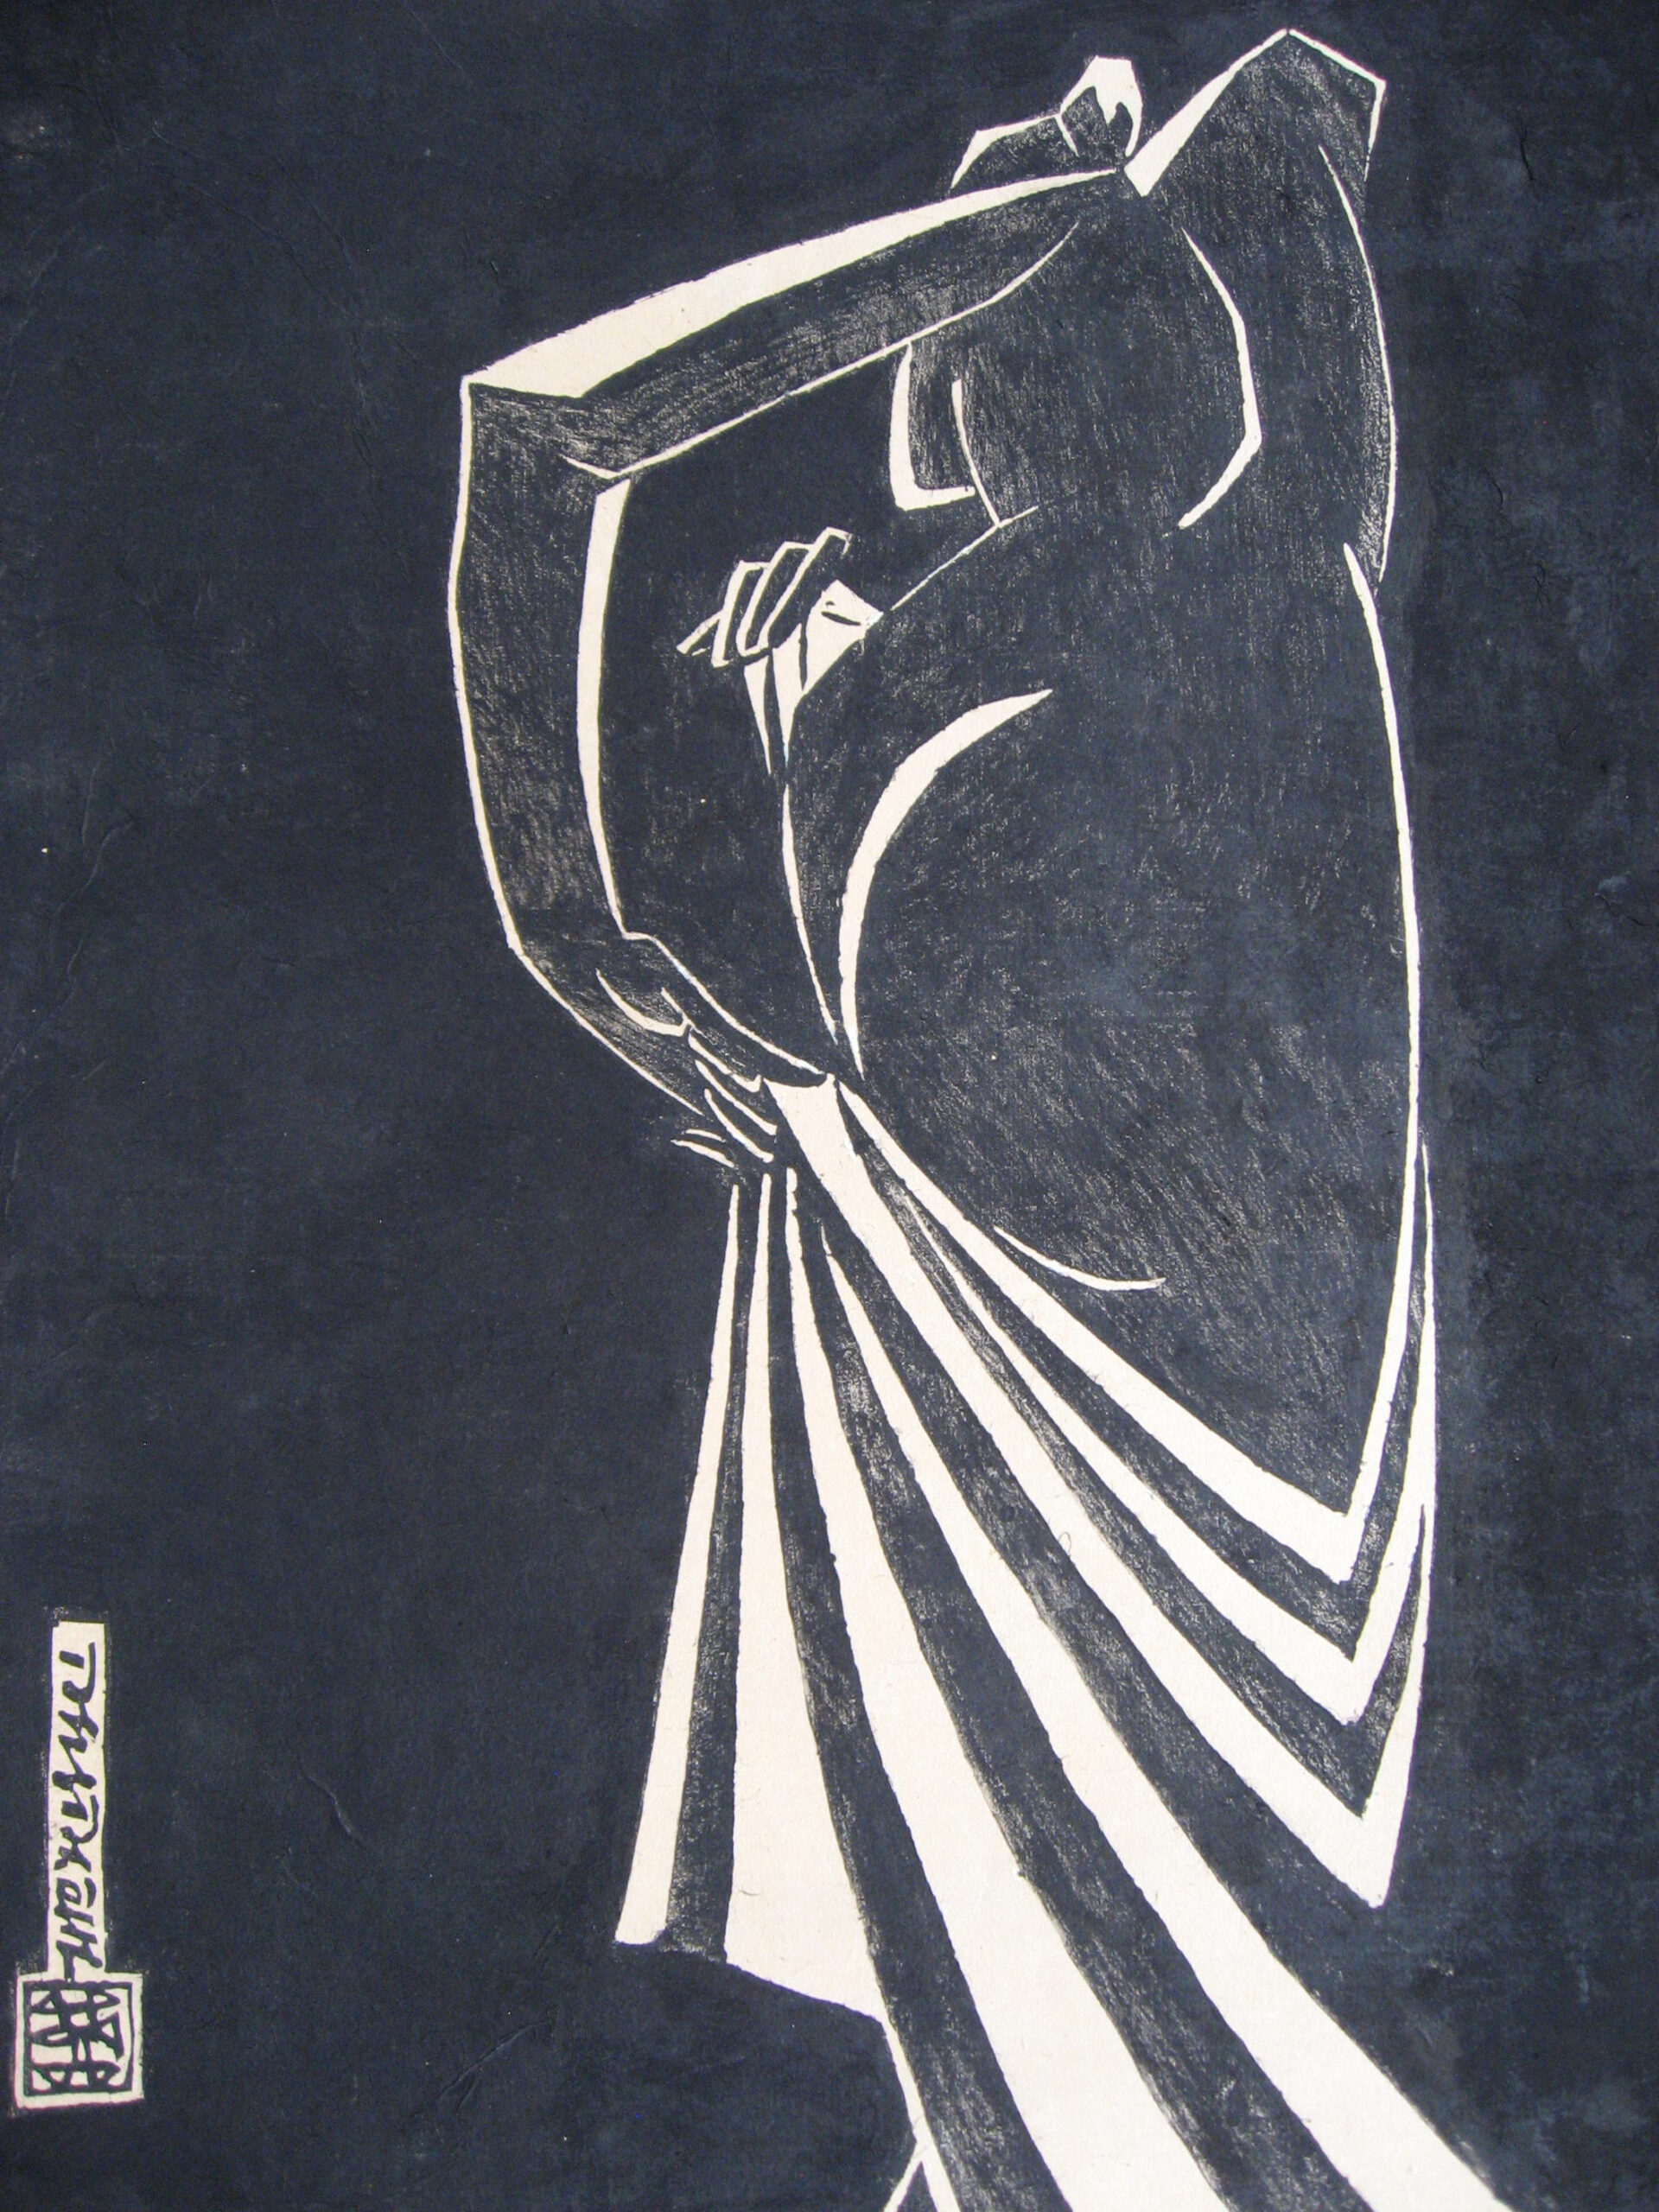 View from Behind by Phung Pham, limited edition woodblock print, 2003, 60 x 44 cm